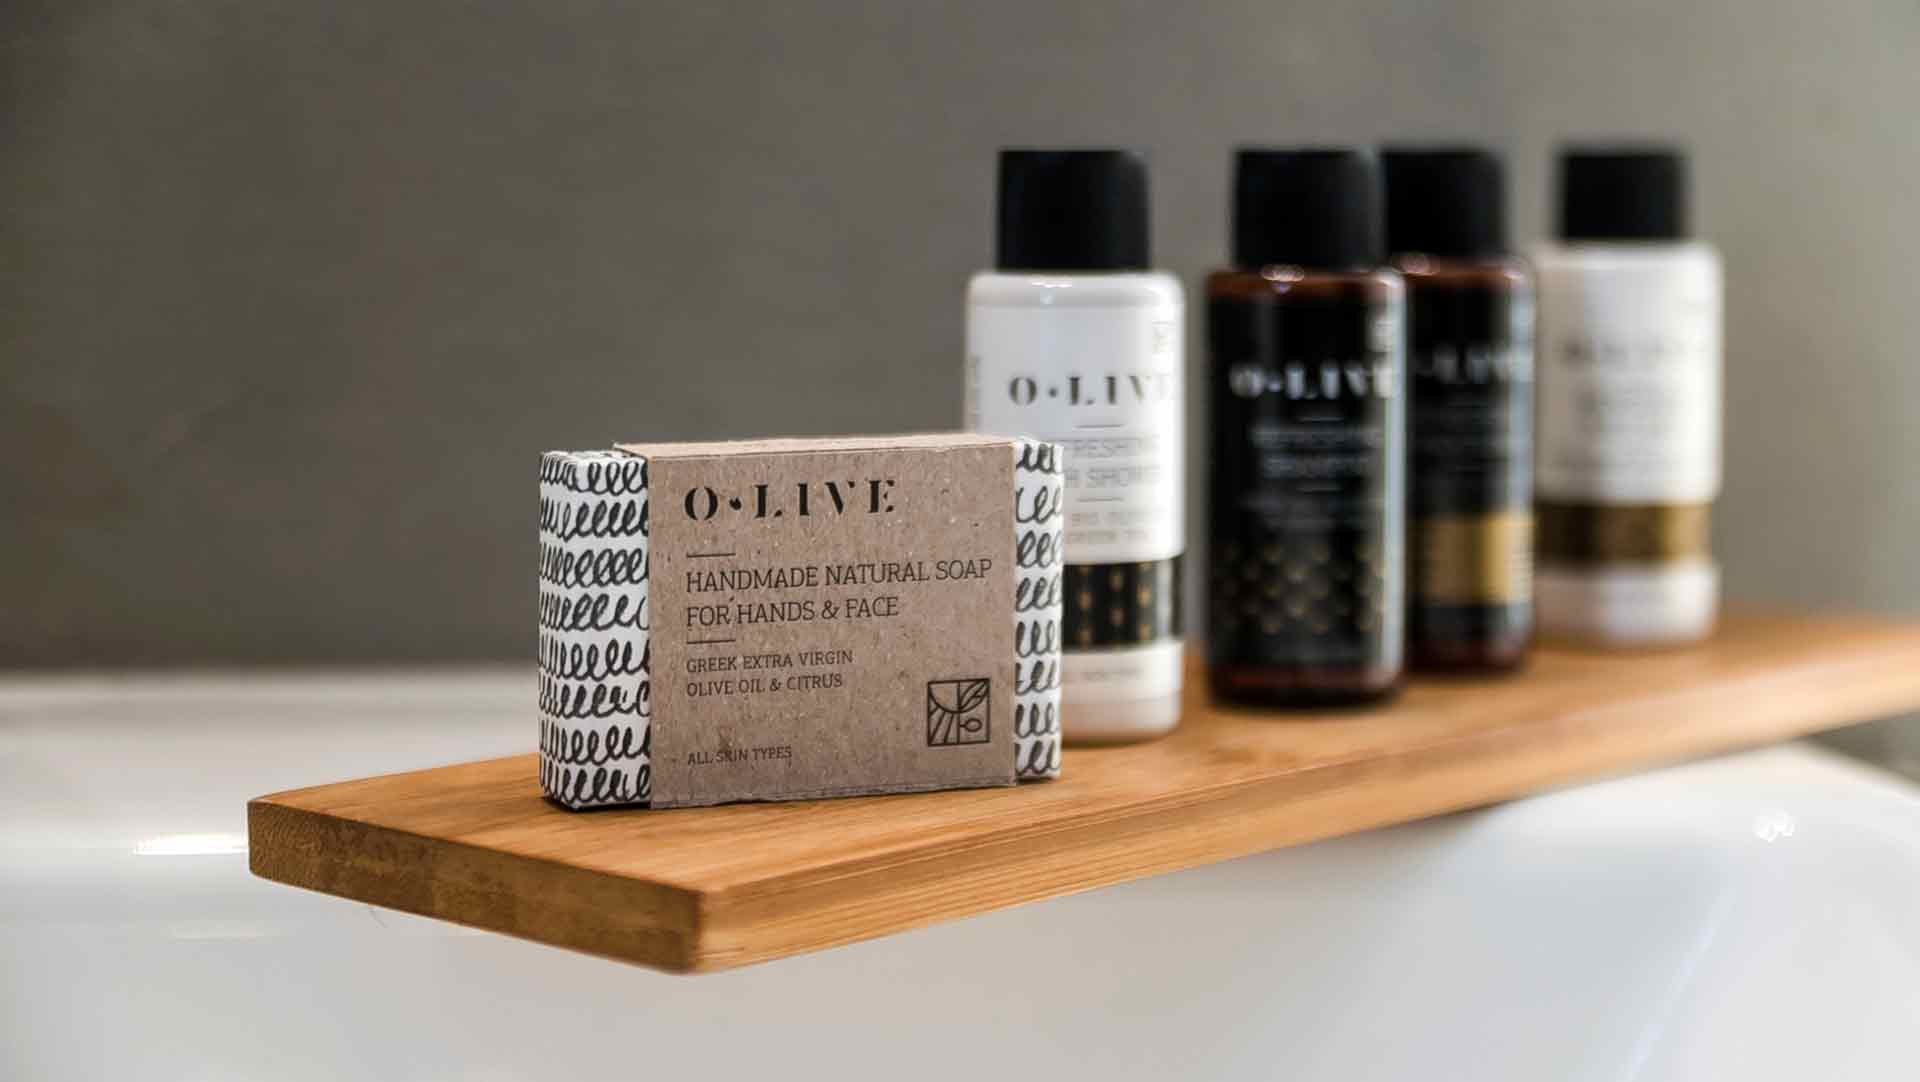 OLIVE products care